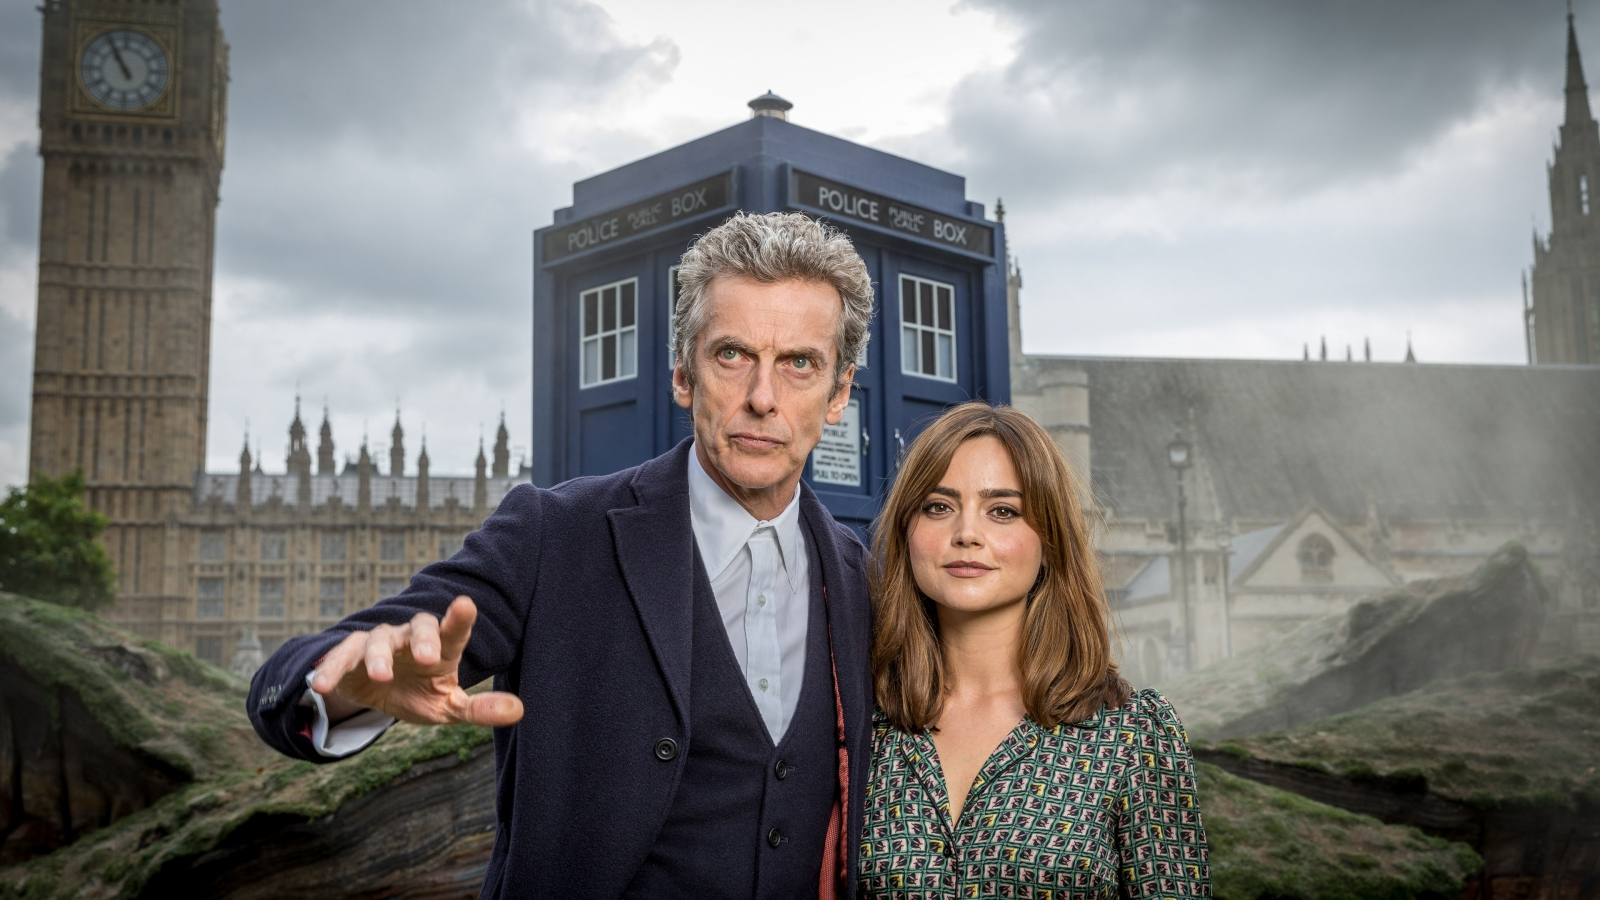 Doctor Who London for 1600 x 900 HDTV resolution